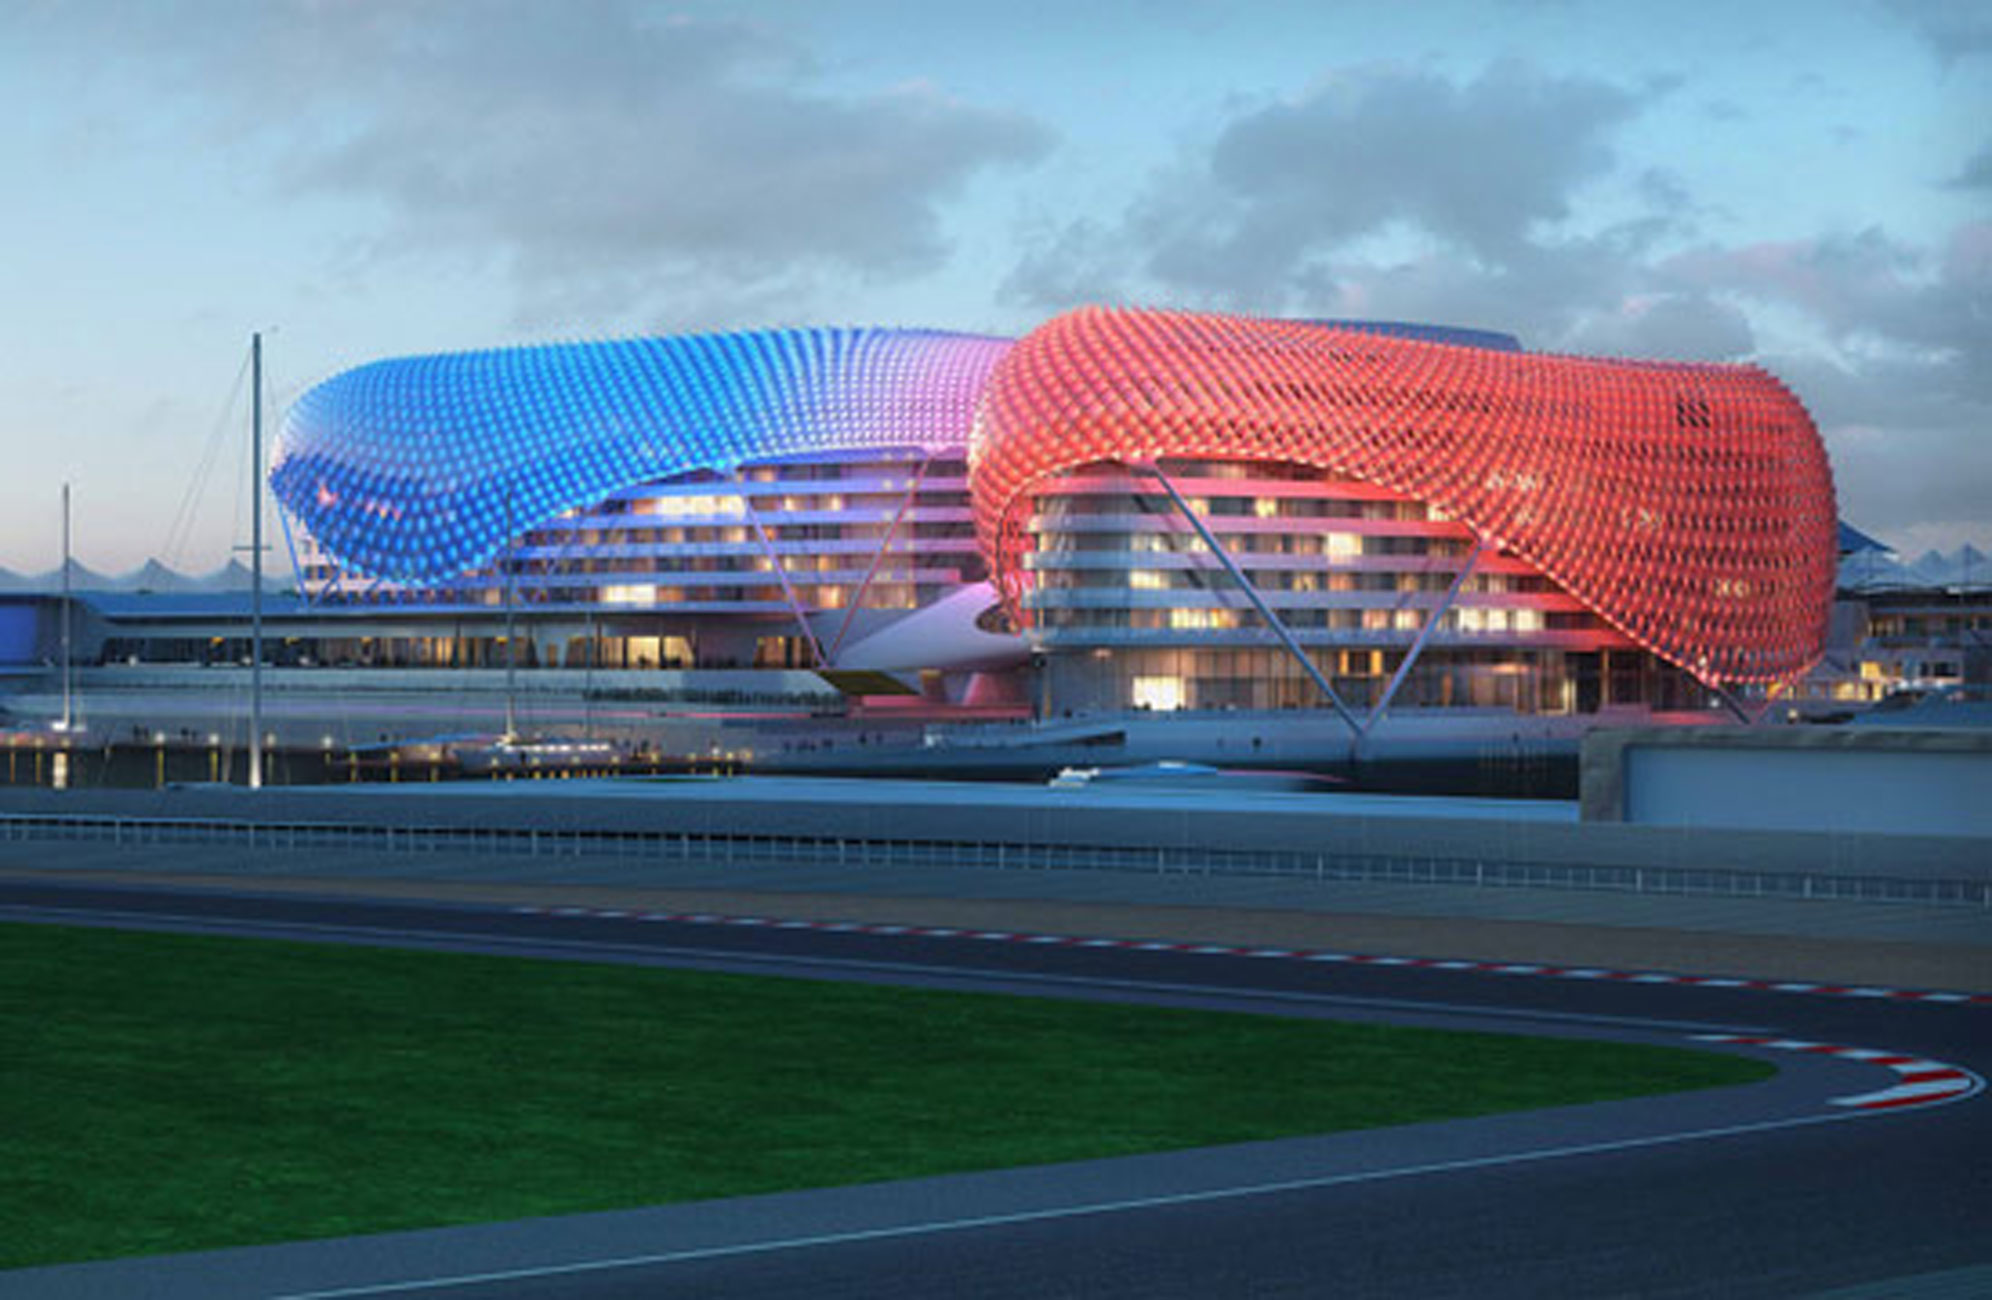 Yas Marina, Modern Arabian Hotel in Abu Dhabi - Architecture